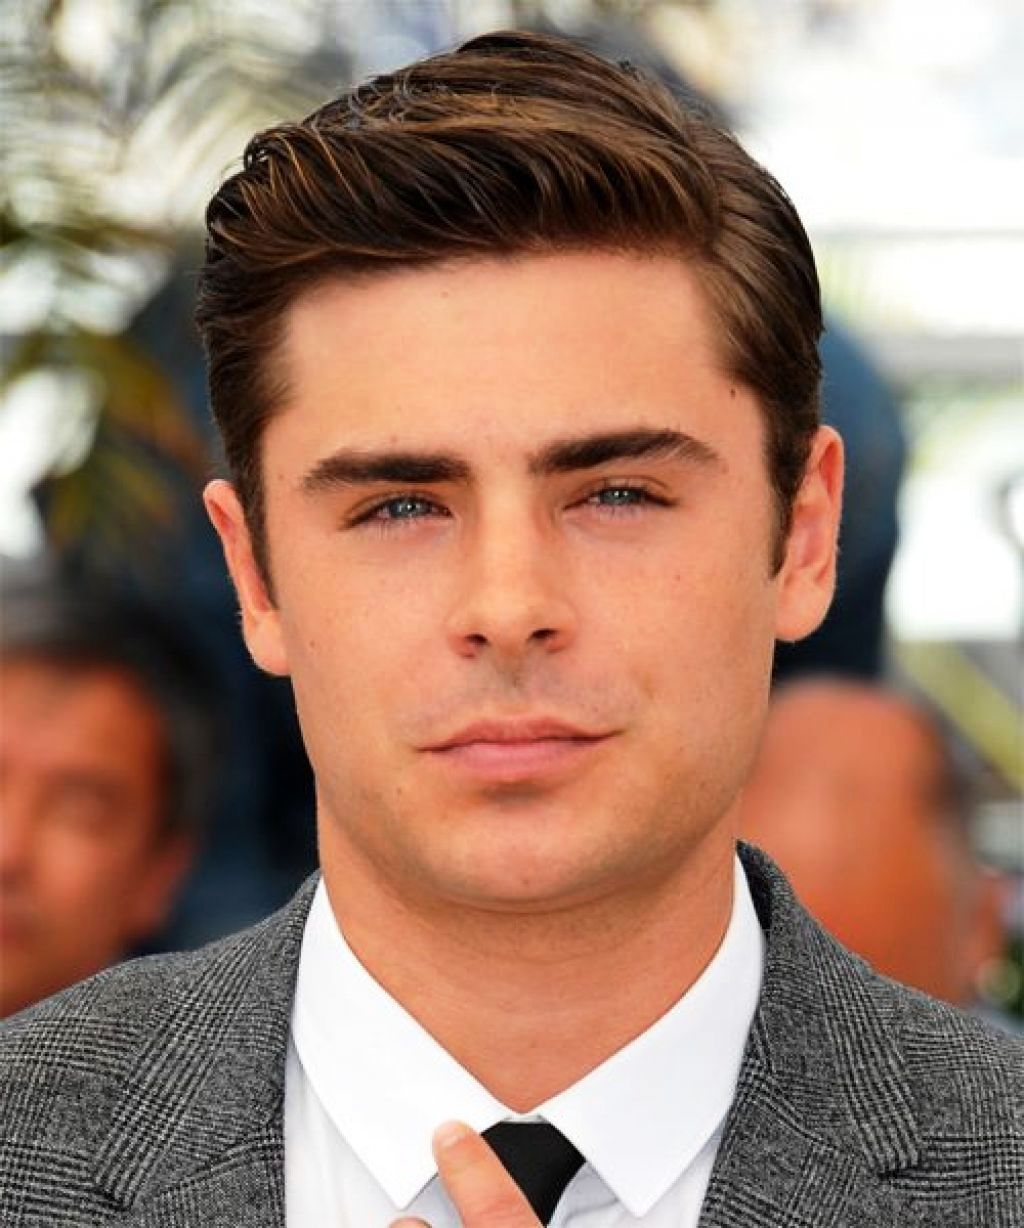 Comb Over Hairstyle Ideas For Men As we talk about hairstyles there are  various categories and style… | Cool short hairstyles, Mens hairstyles  short, Zac efron hair